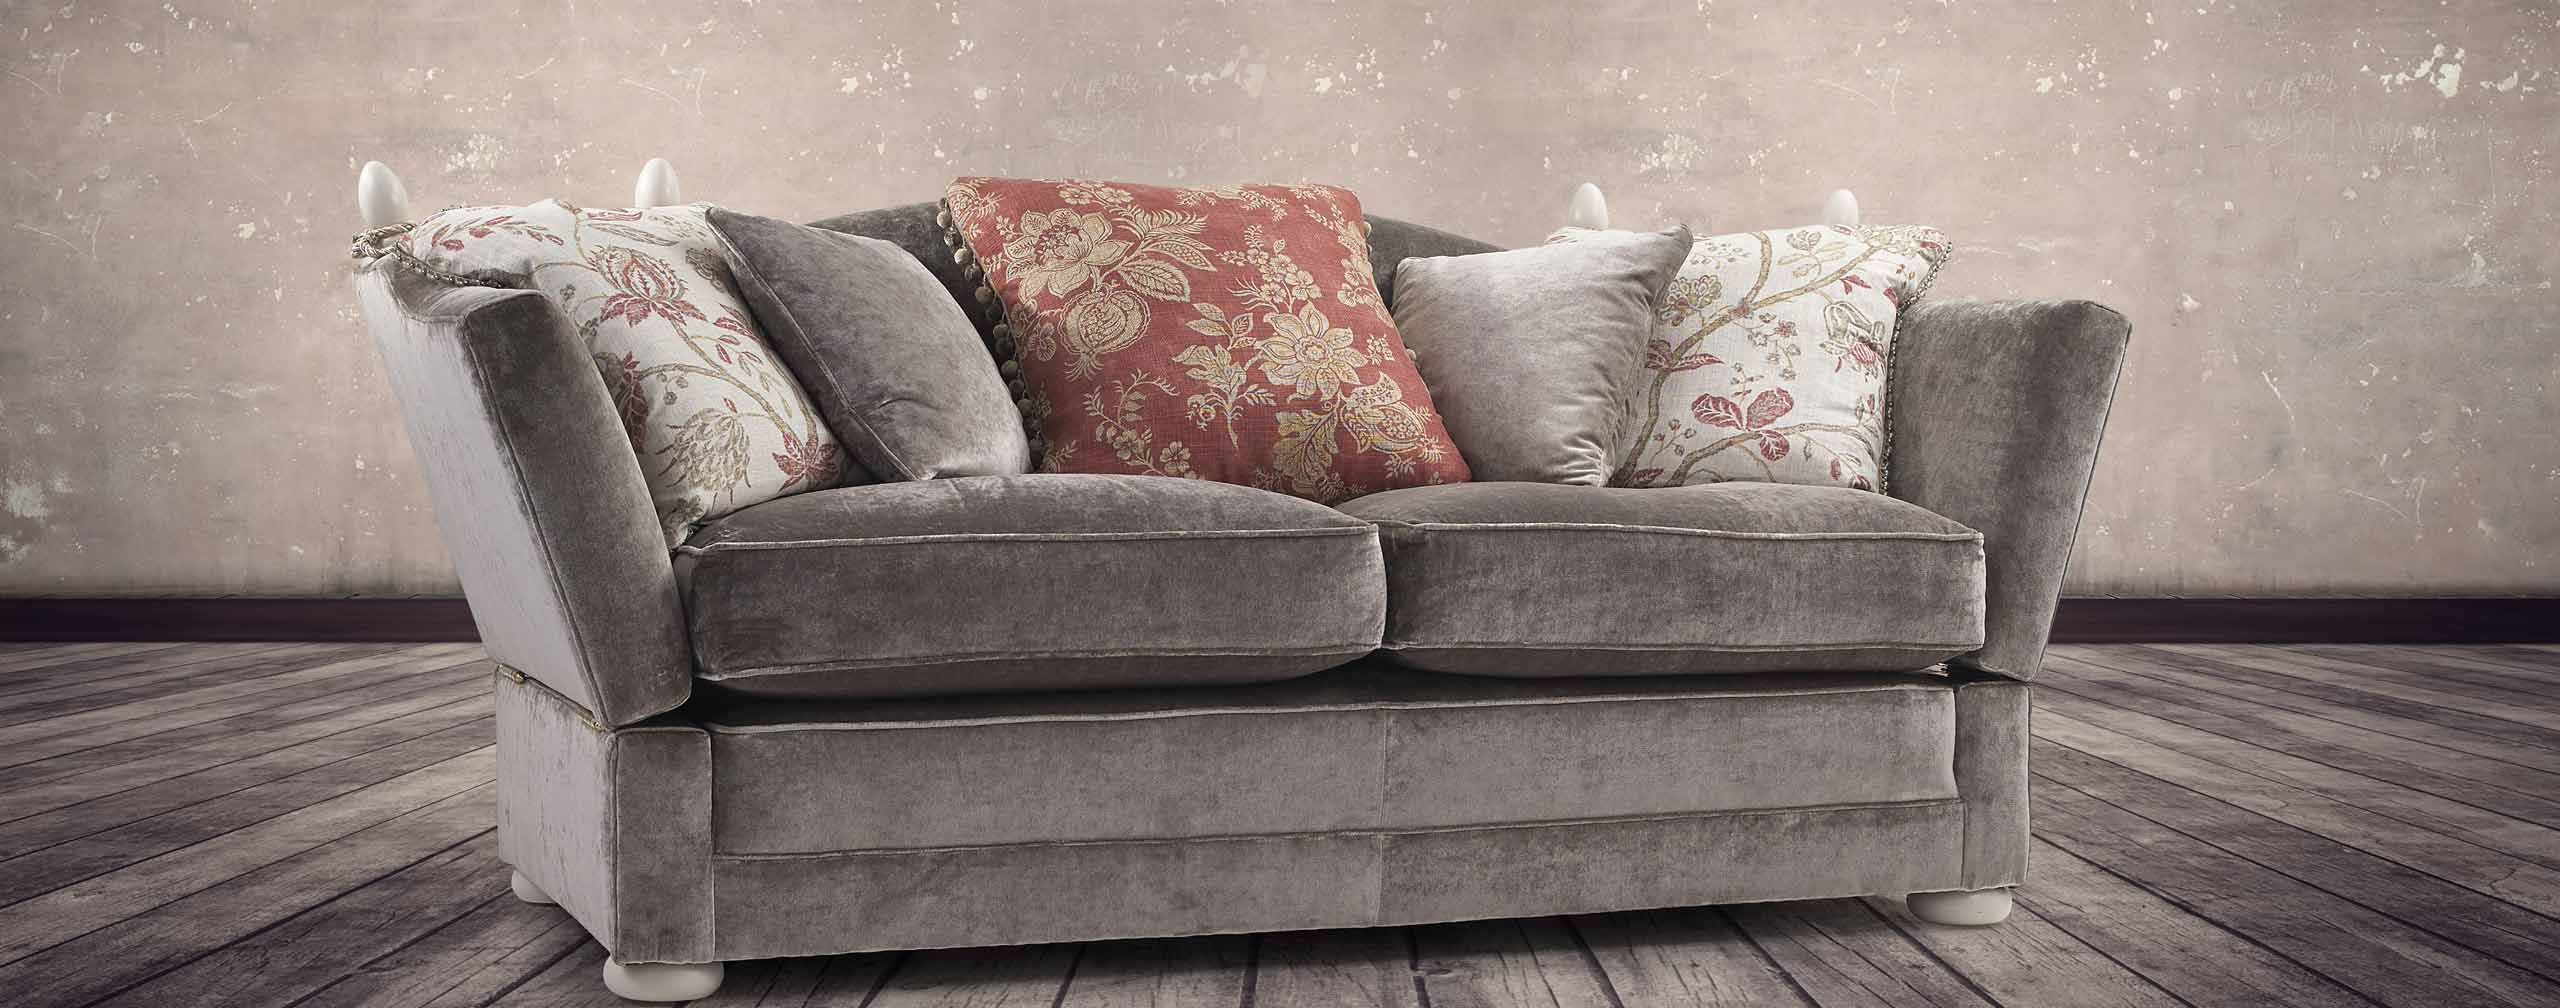 sofa bed banner image